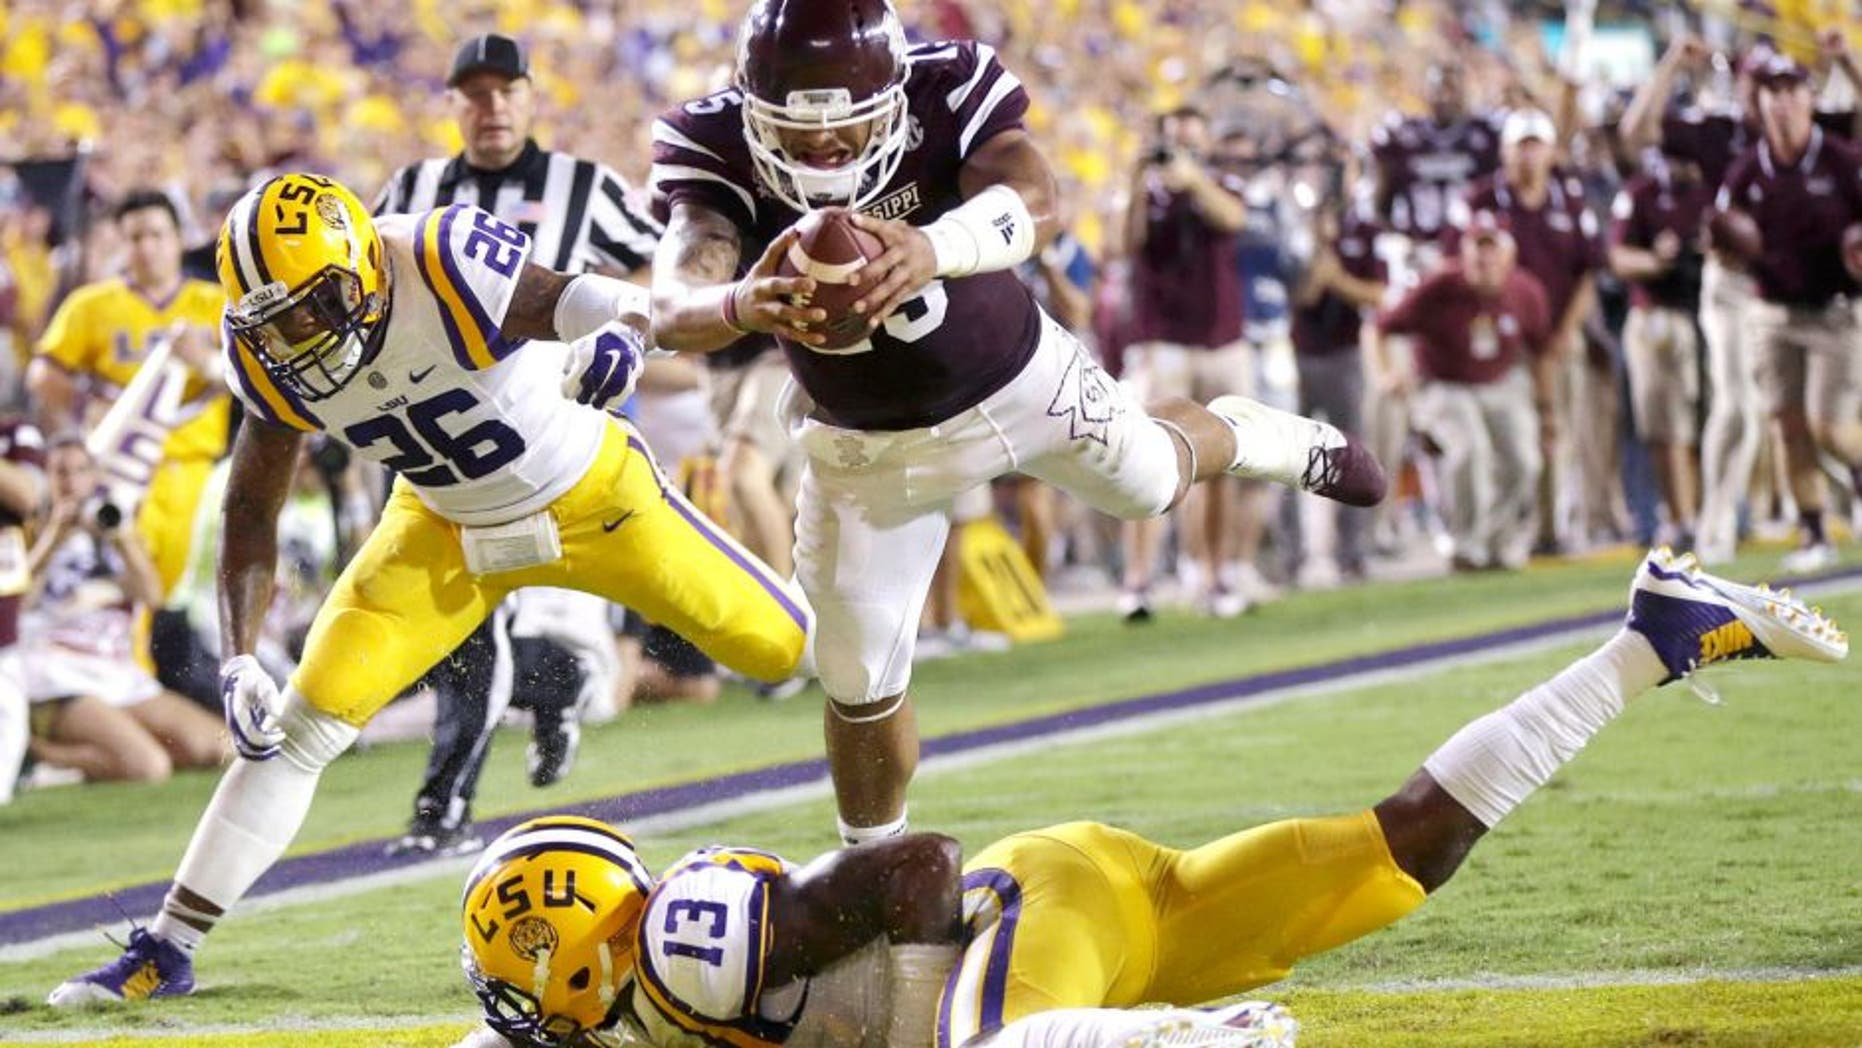 Mississippi State quarterback Dak Prescott (15) dives into the end zone over LSU cornerback Dwayne Thomas (13) and safety Ronald Martin (26) on a 56 yard touchdown run in the second half of an NCAA college football game in Baton Rouge, La., Saturday, Sept. 20, 2014. (AP Photo/Gerald Herbert)